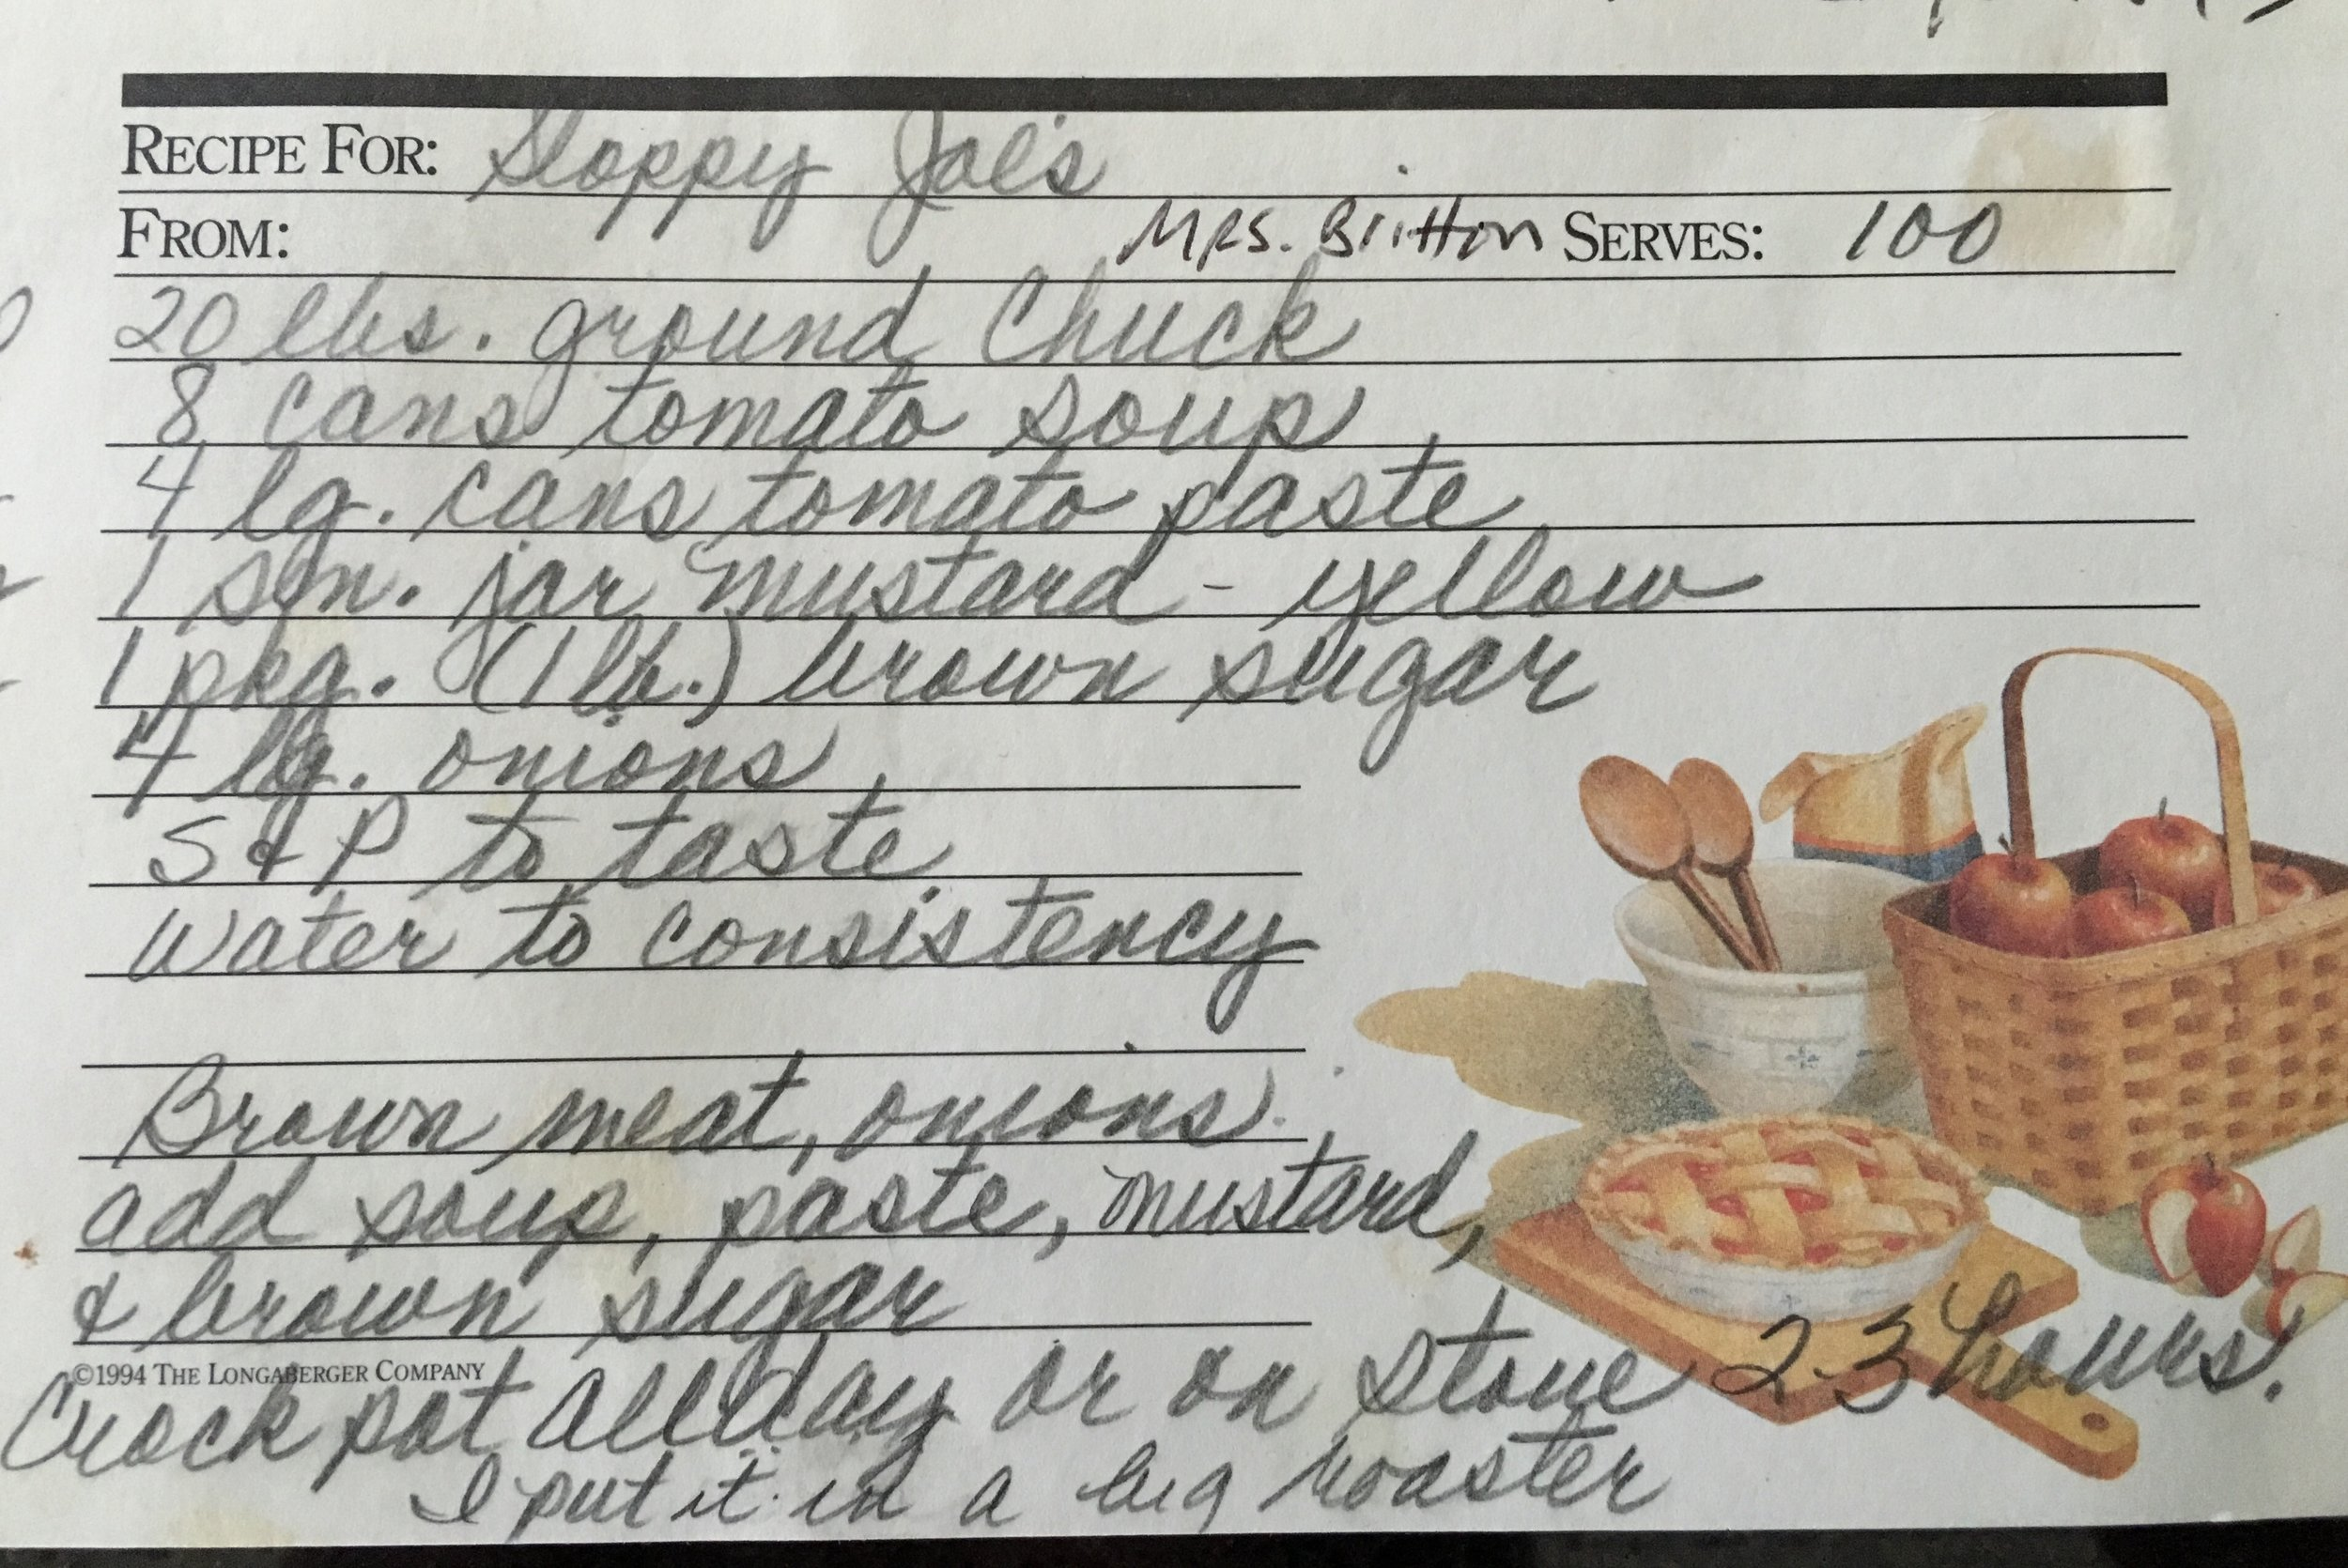 The original sloppy joe recipe, in that perfect elementary teacher penmanship.